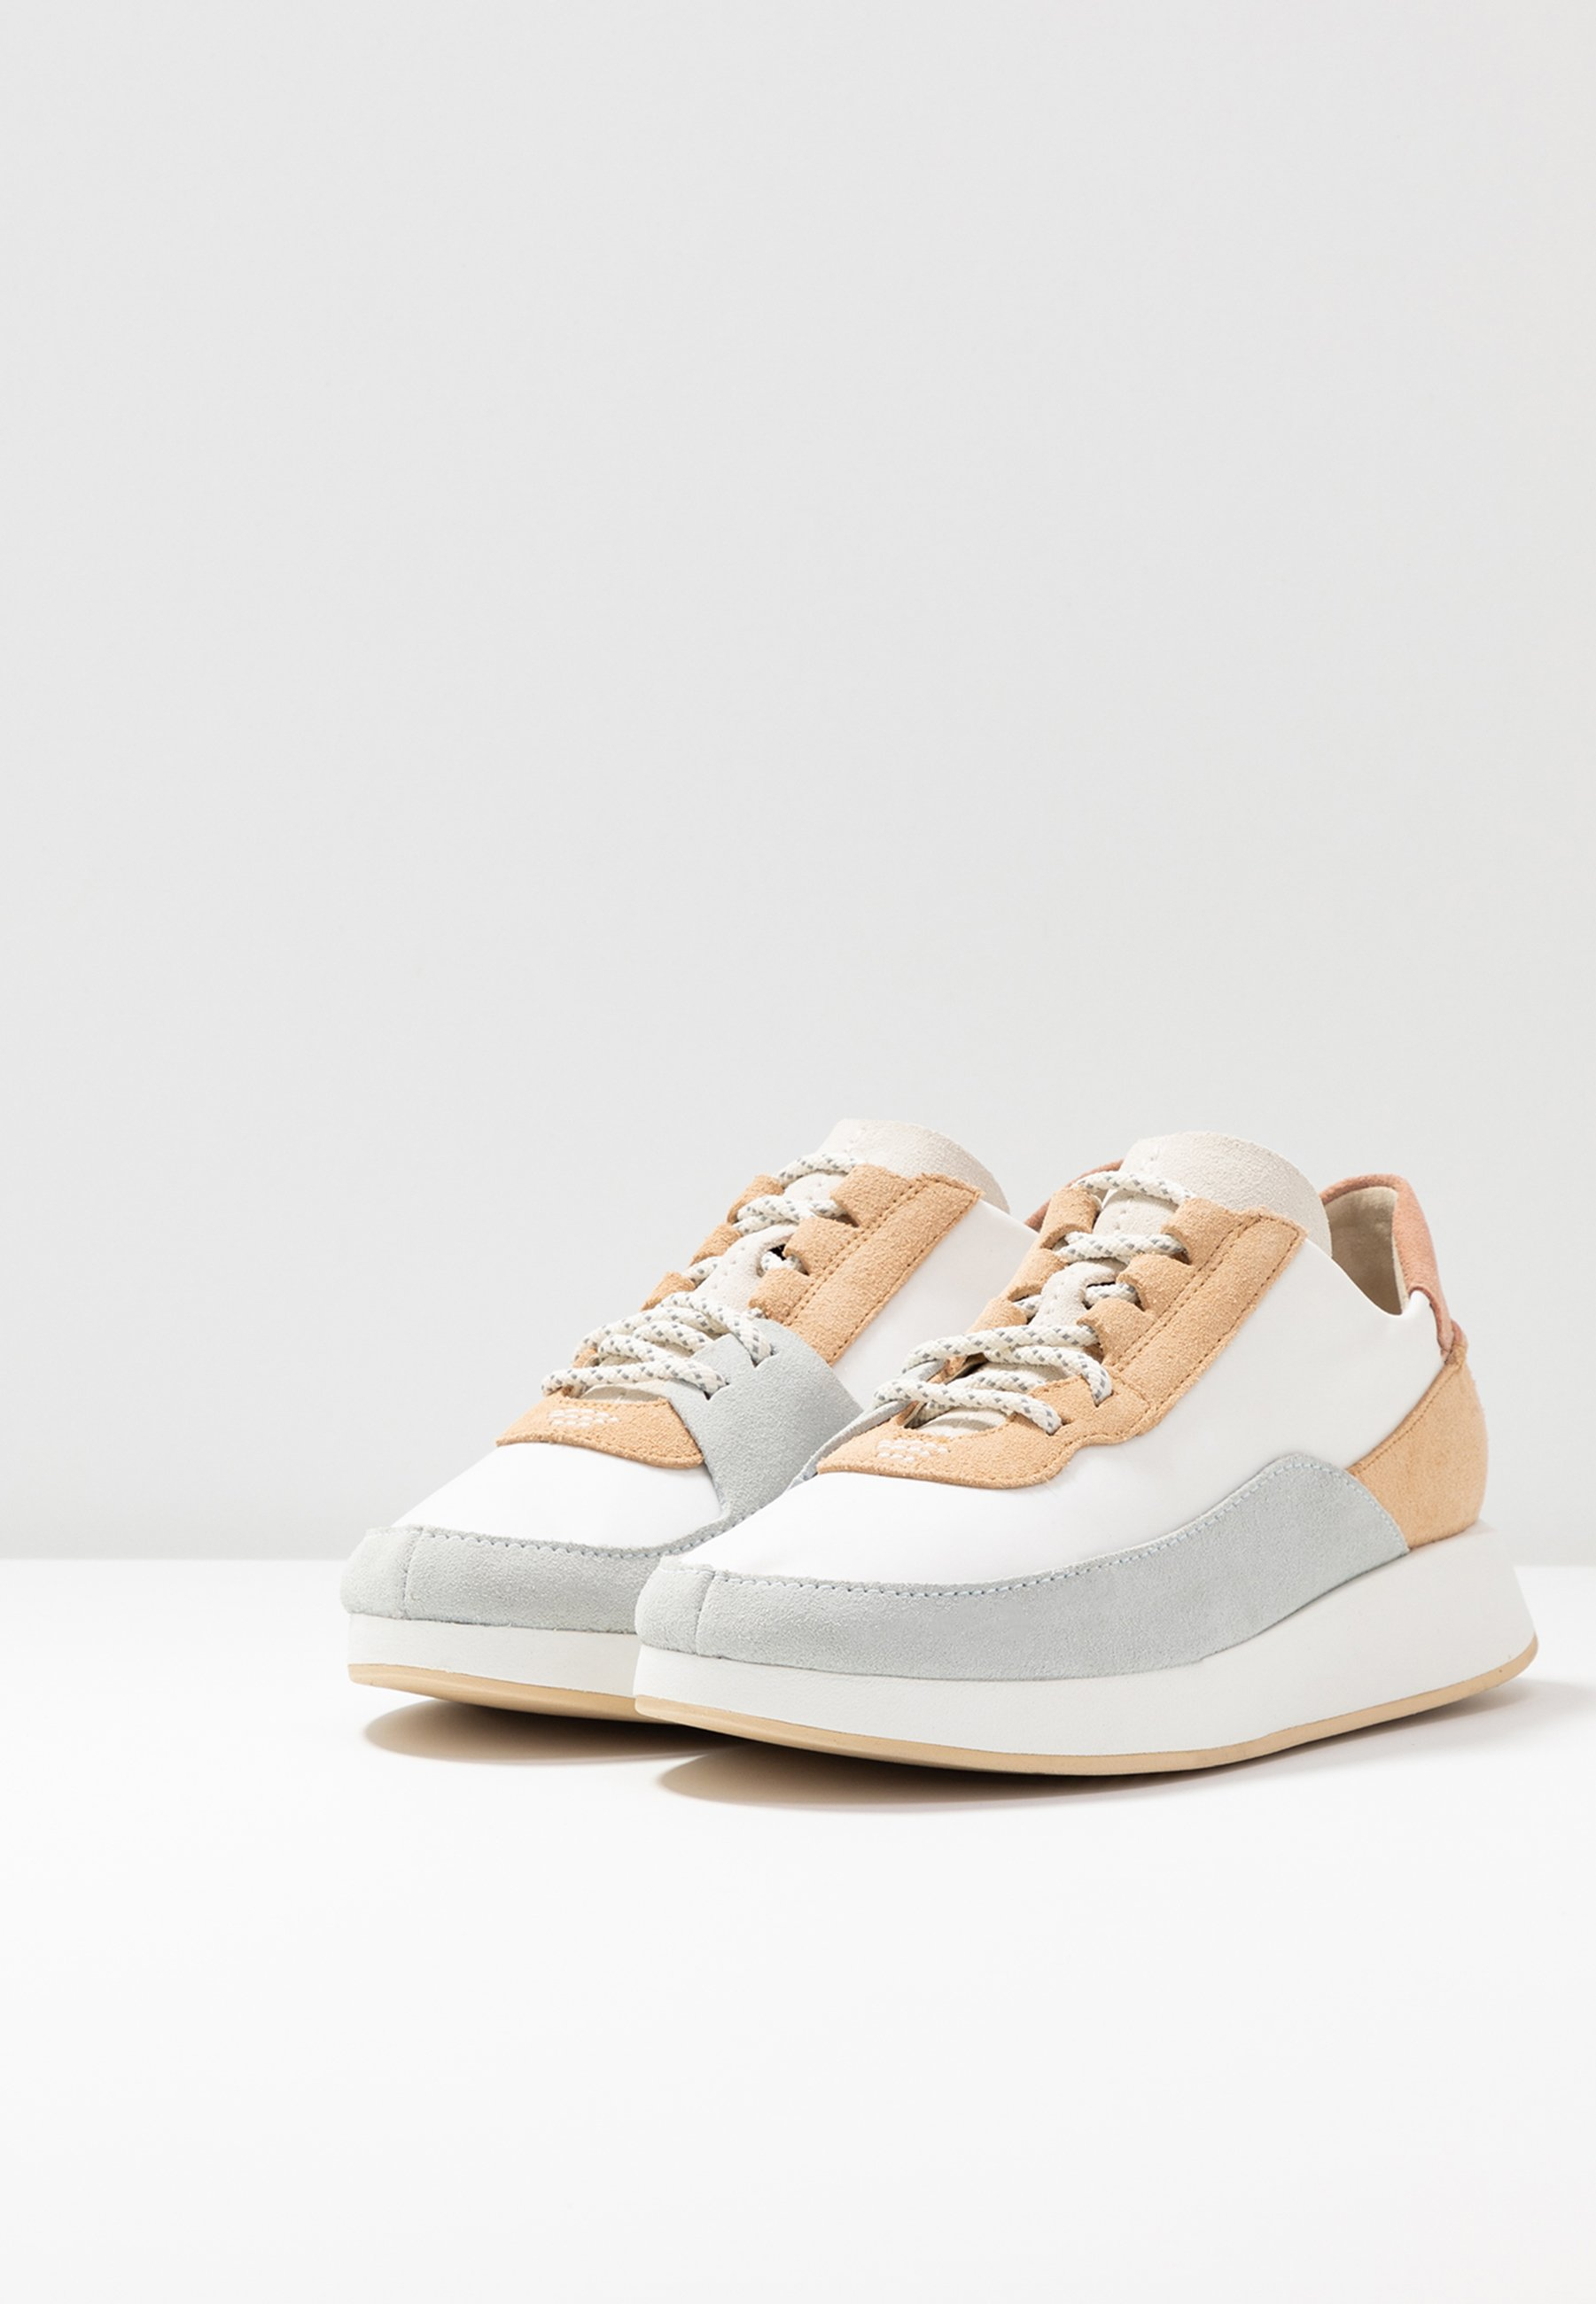 Clarks Originals KIOWA PACE - Sneakers - white/multicolor